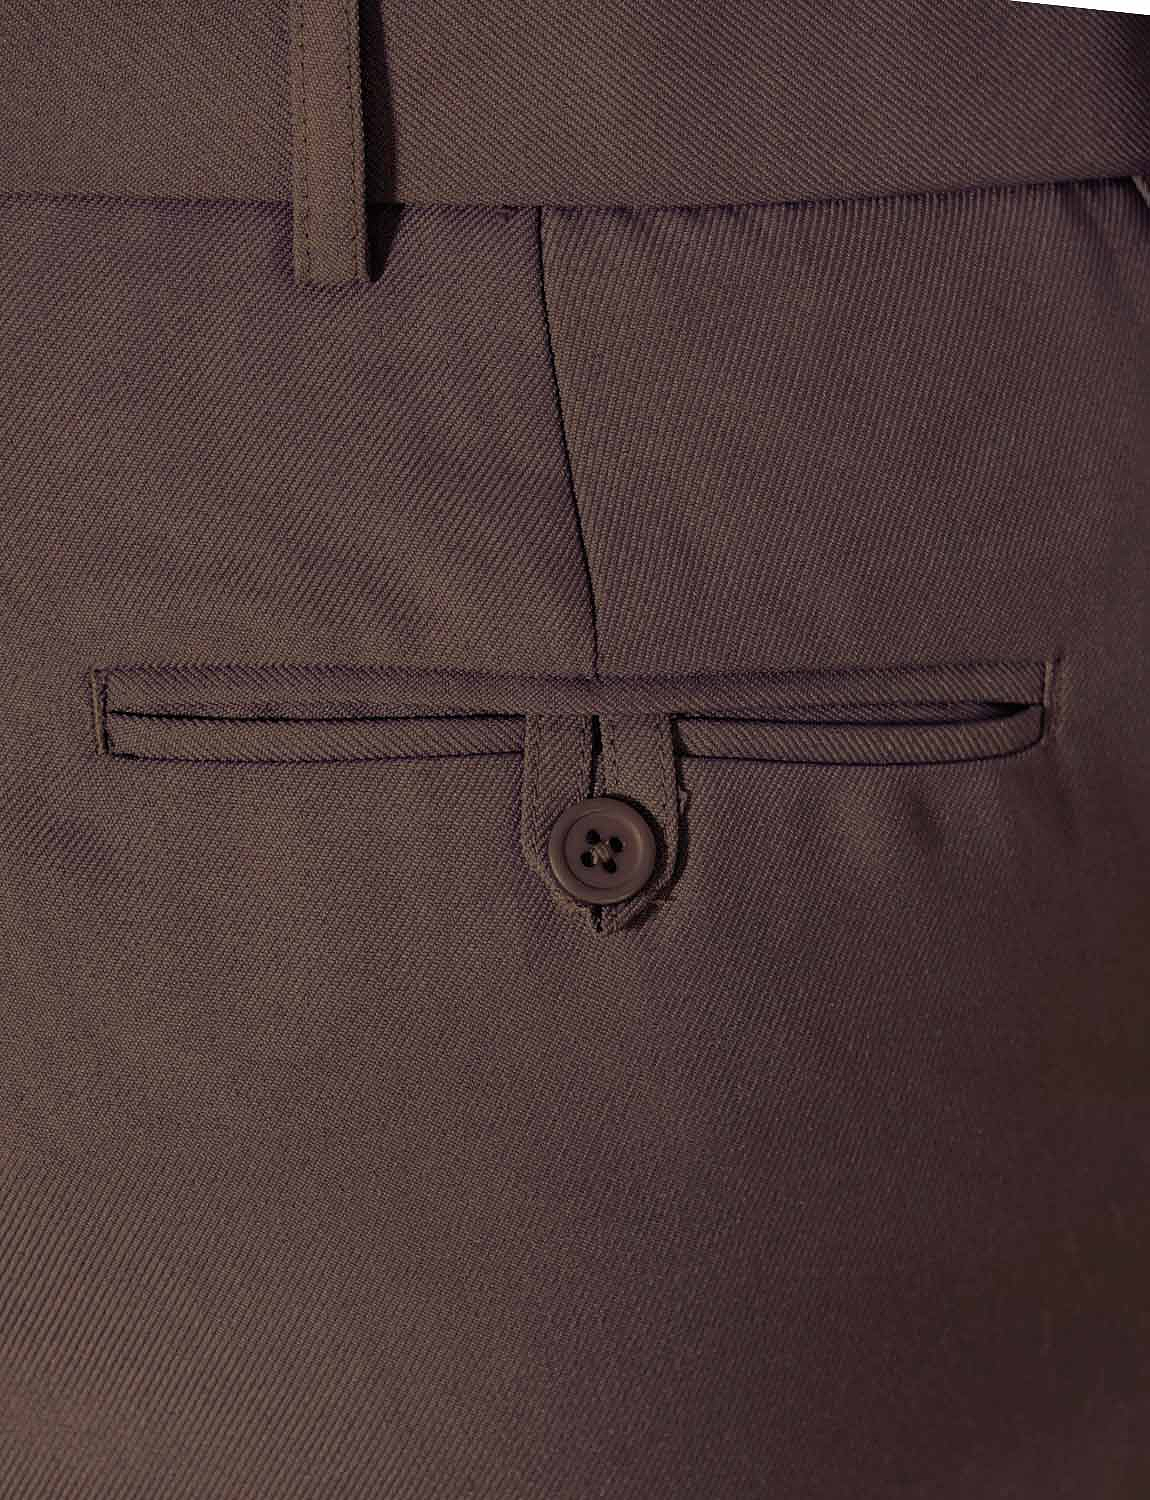 Mens-Stretch-Waist-Formal-Smart-Work-Trouser-Pants thumbnail 9